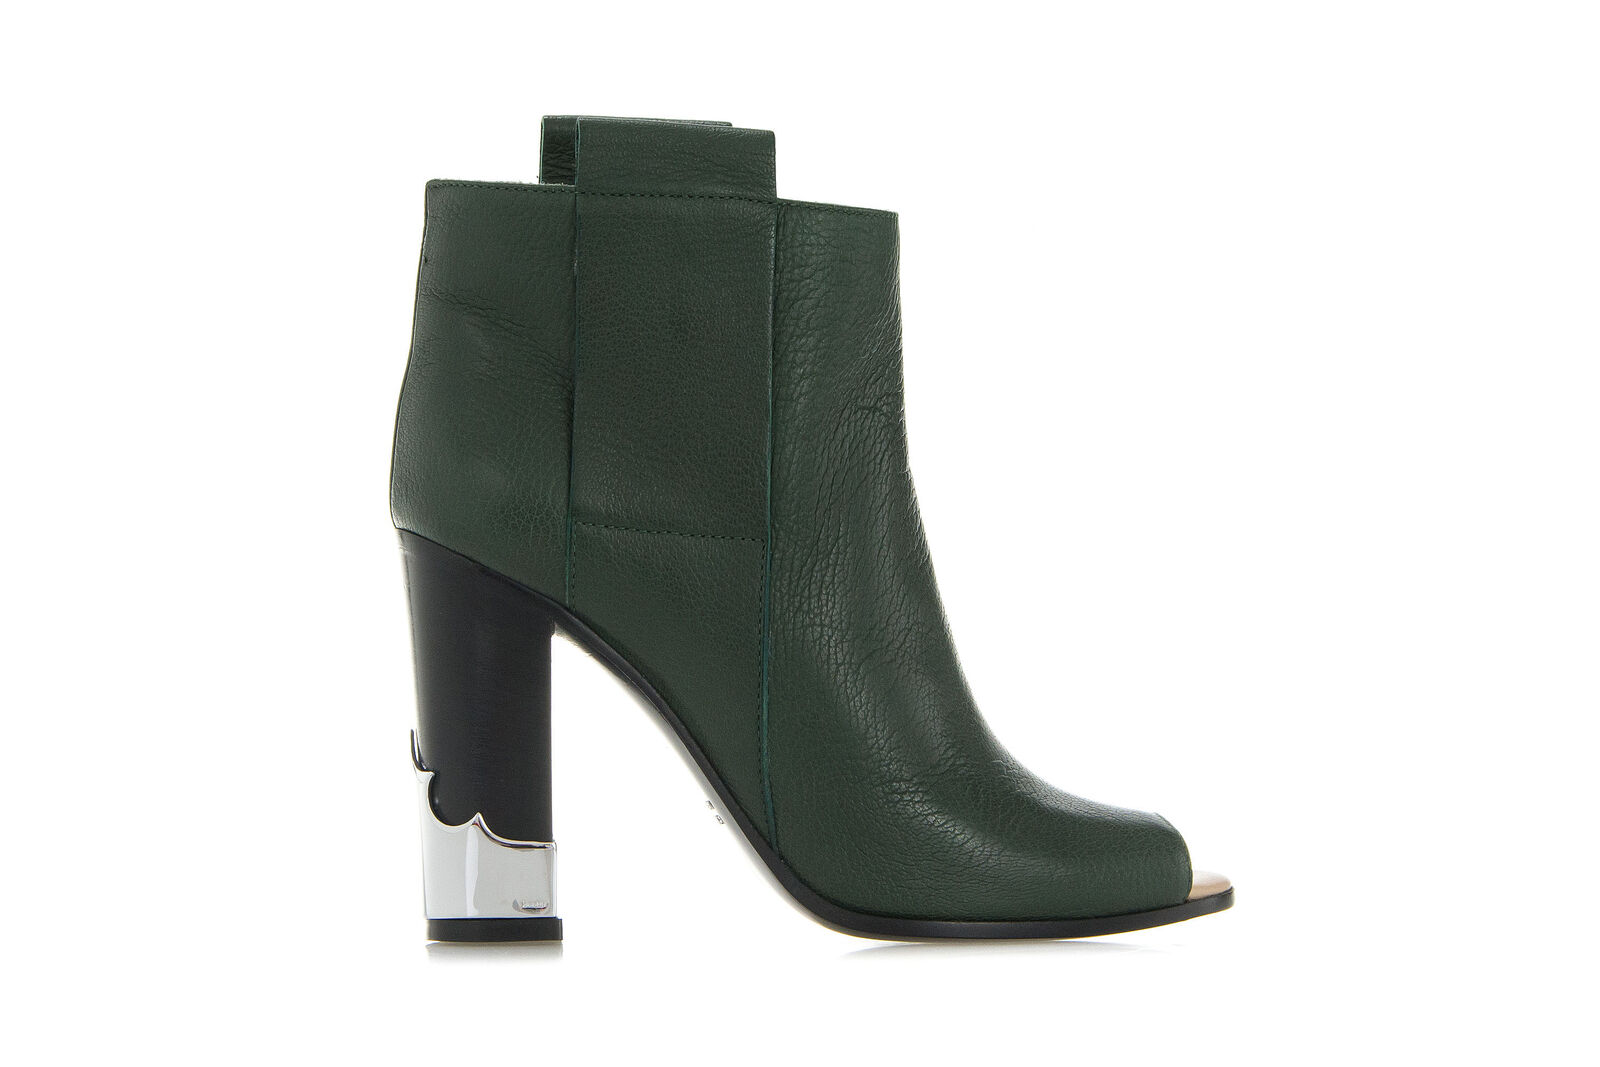 GOLDEN GOOSE Womens Shoes Ankle NUI BOOTS Green Pebbled Leather Open Toe